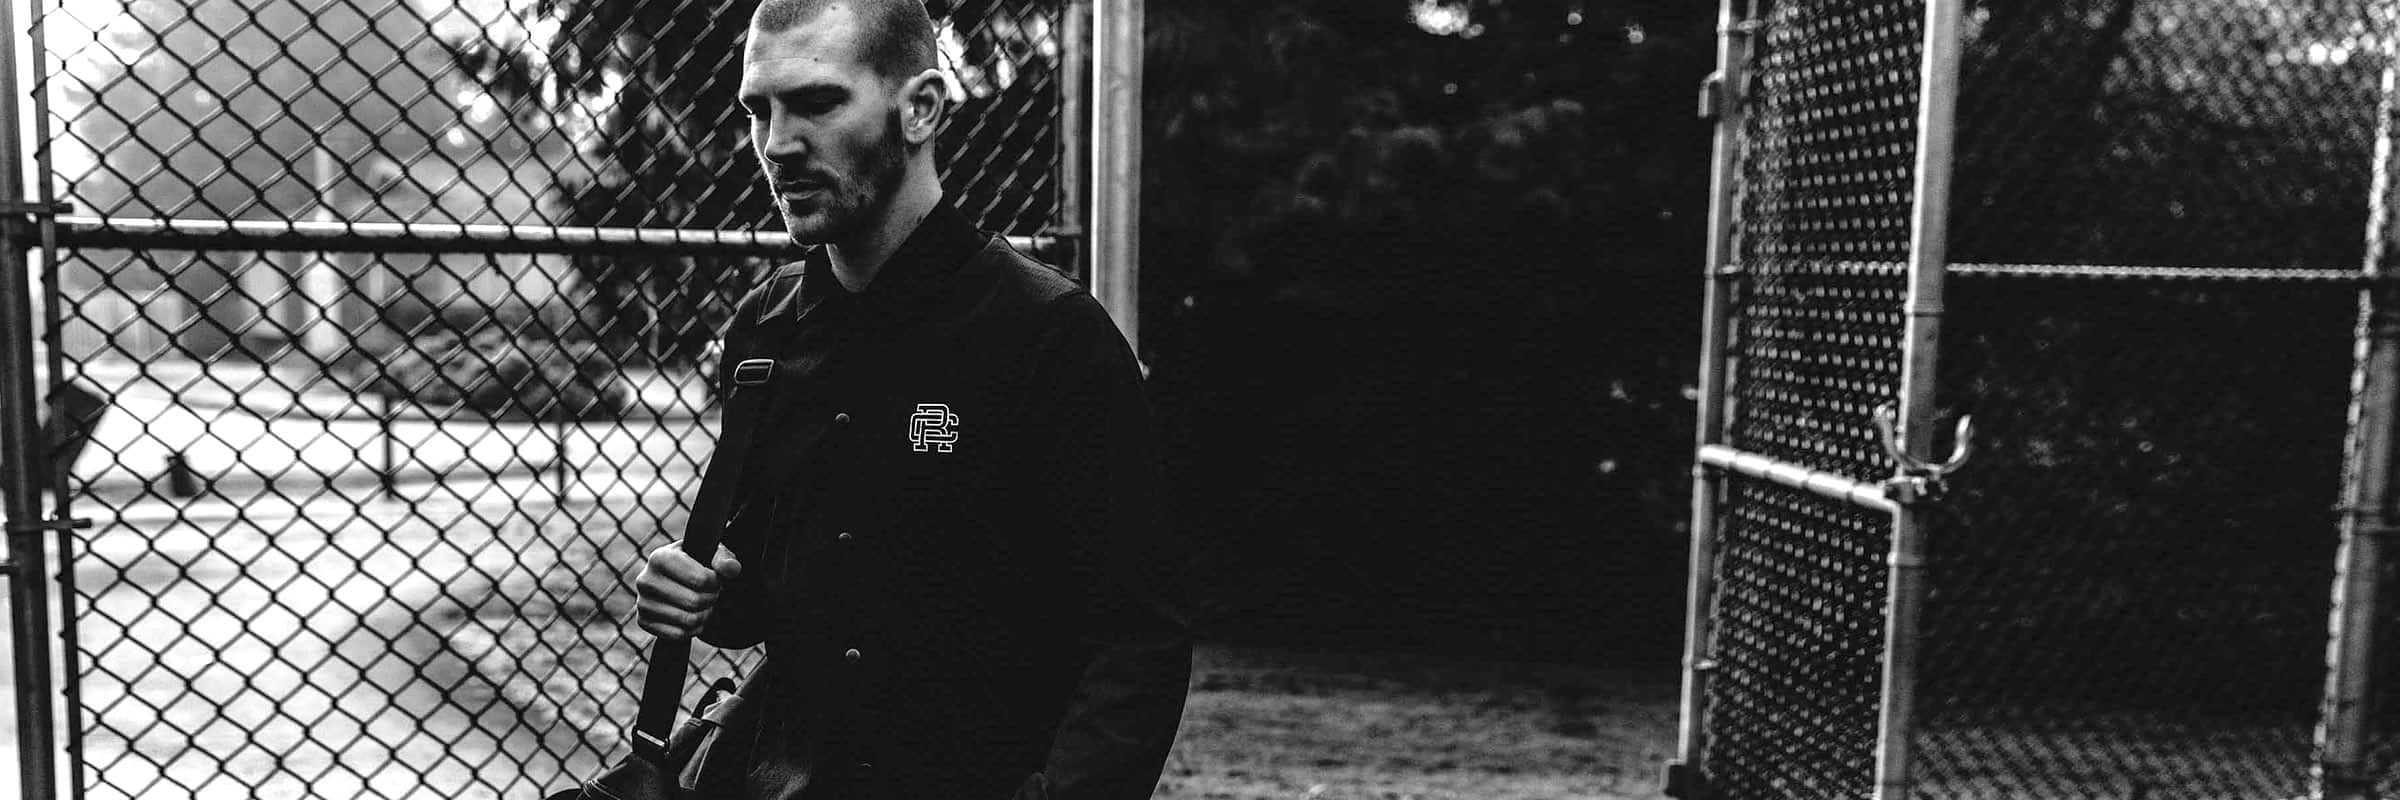 reigning champ. Reigning Champ: Athletic Clothing With A Minimalist Design